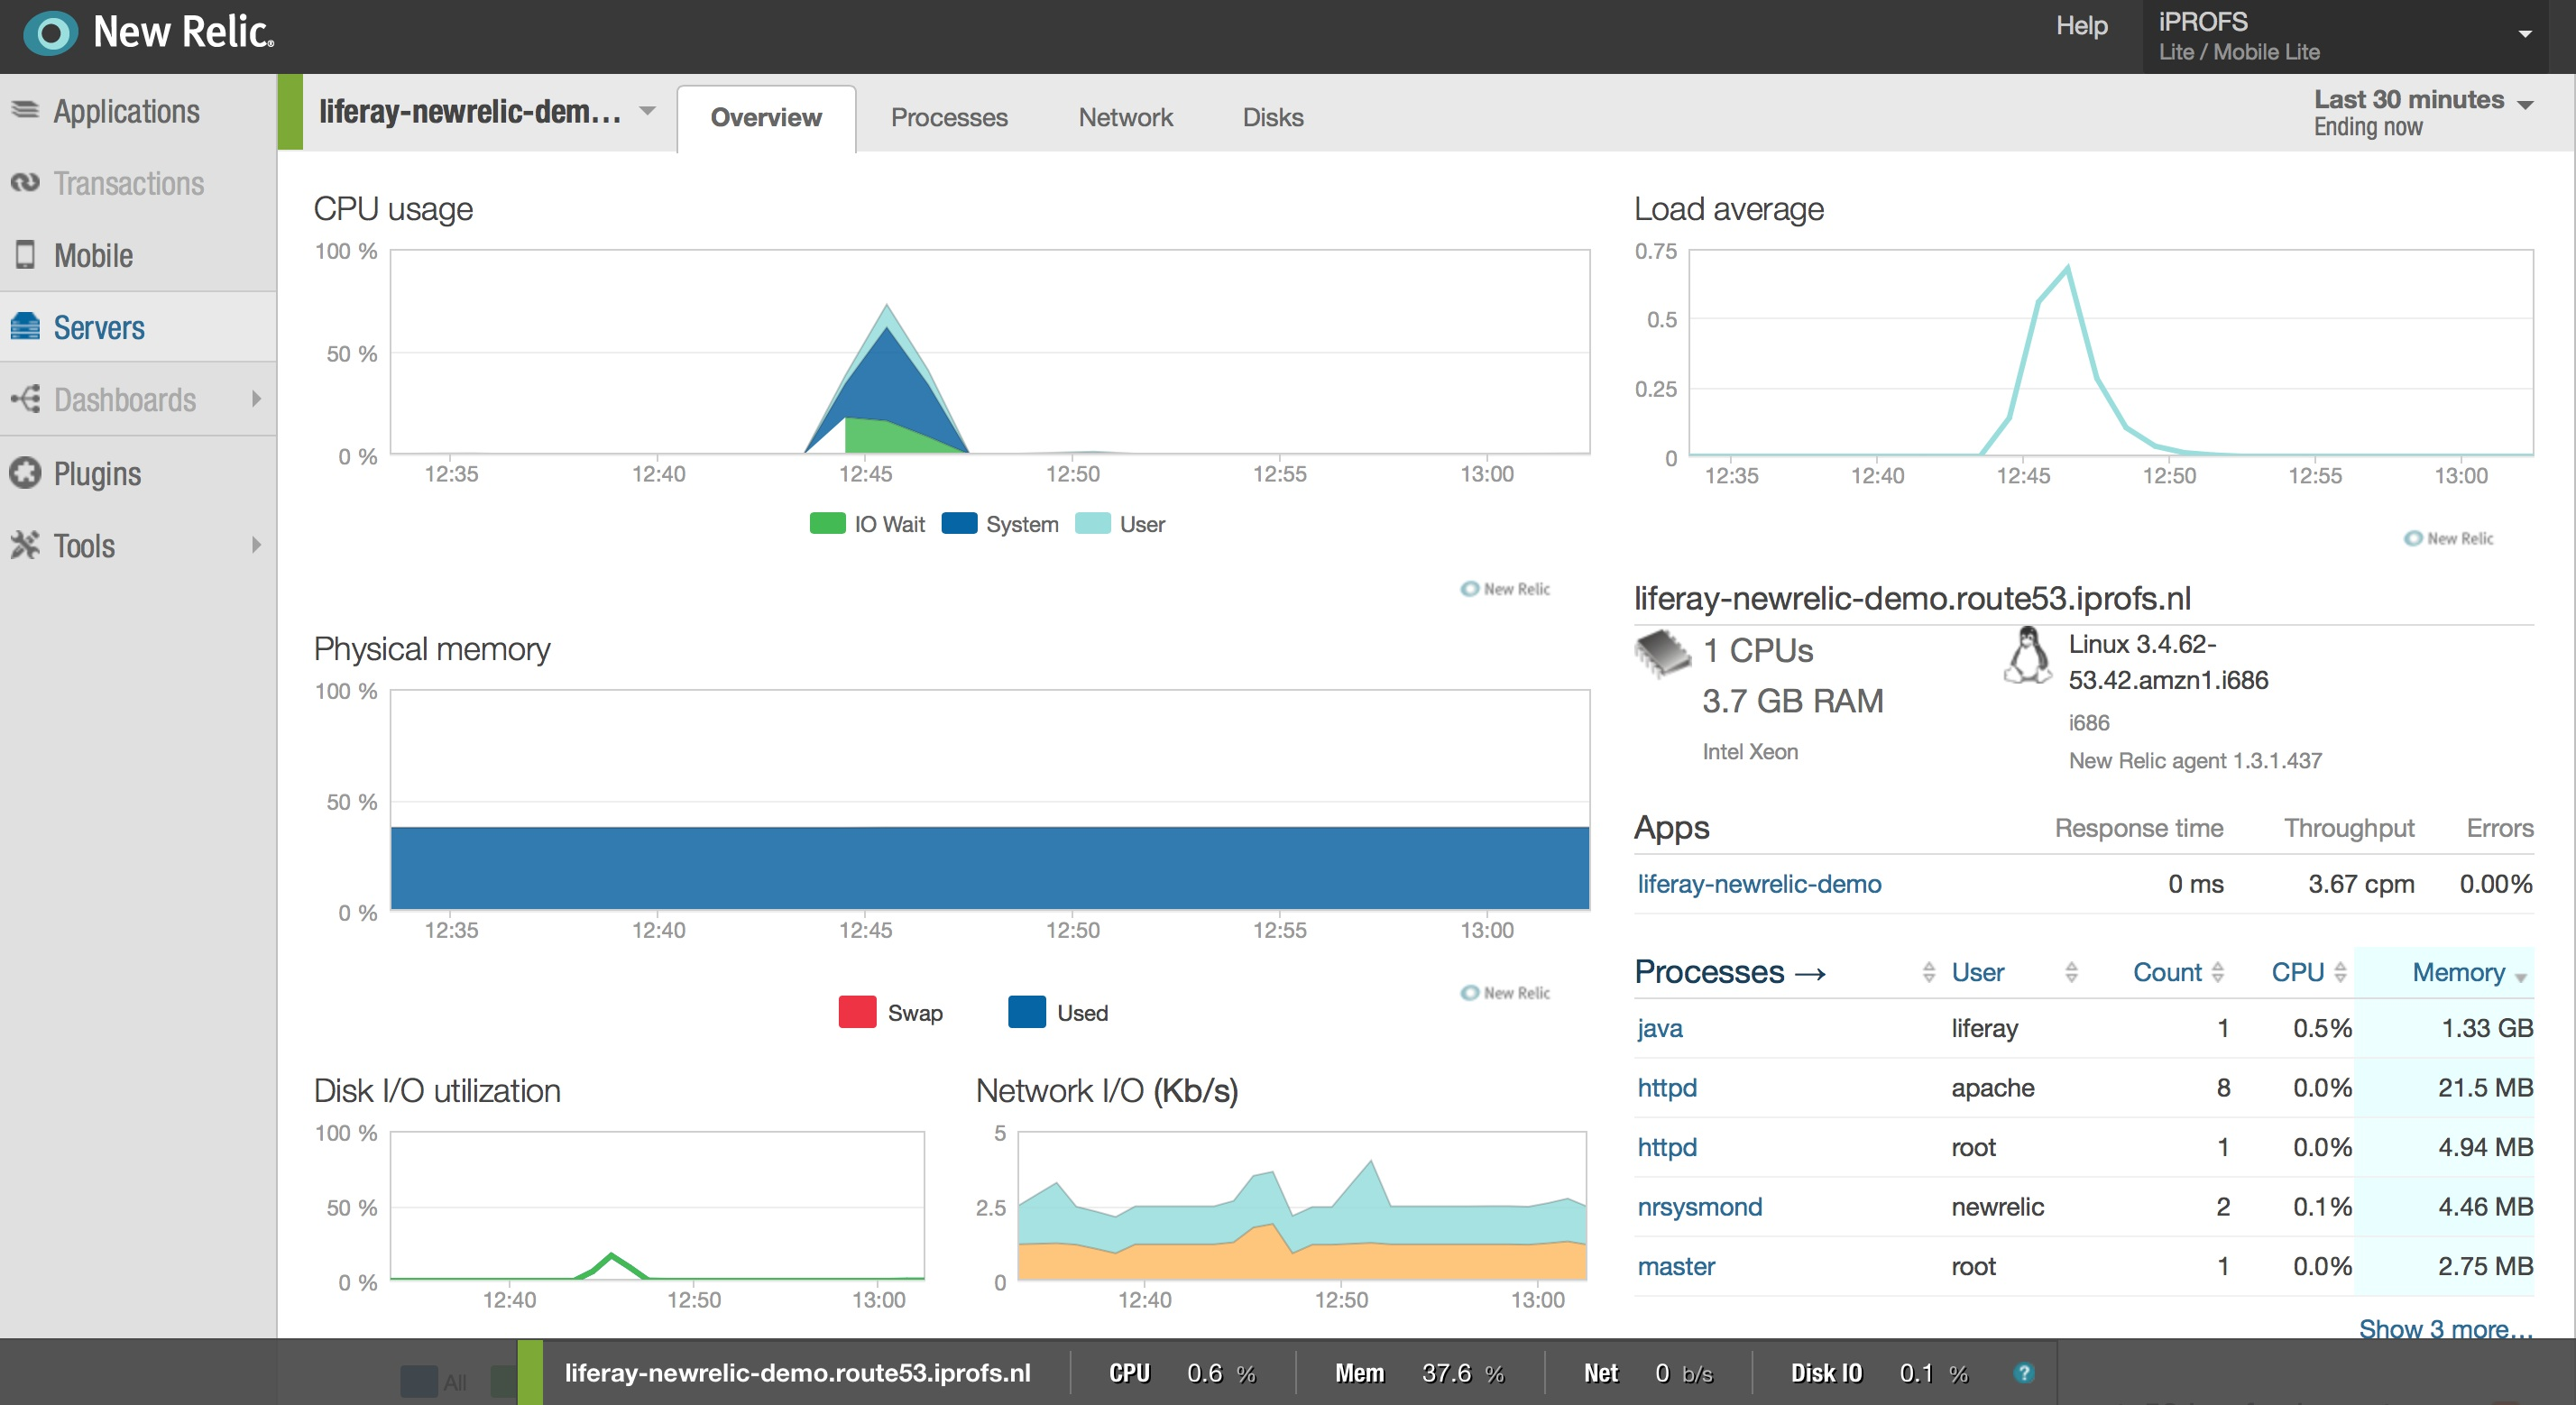 Monitoring Liferay with New Relic | iPROFS Technology Blog